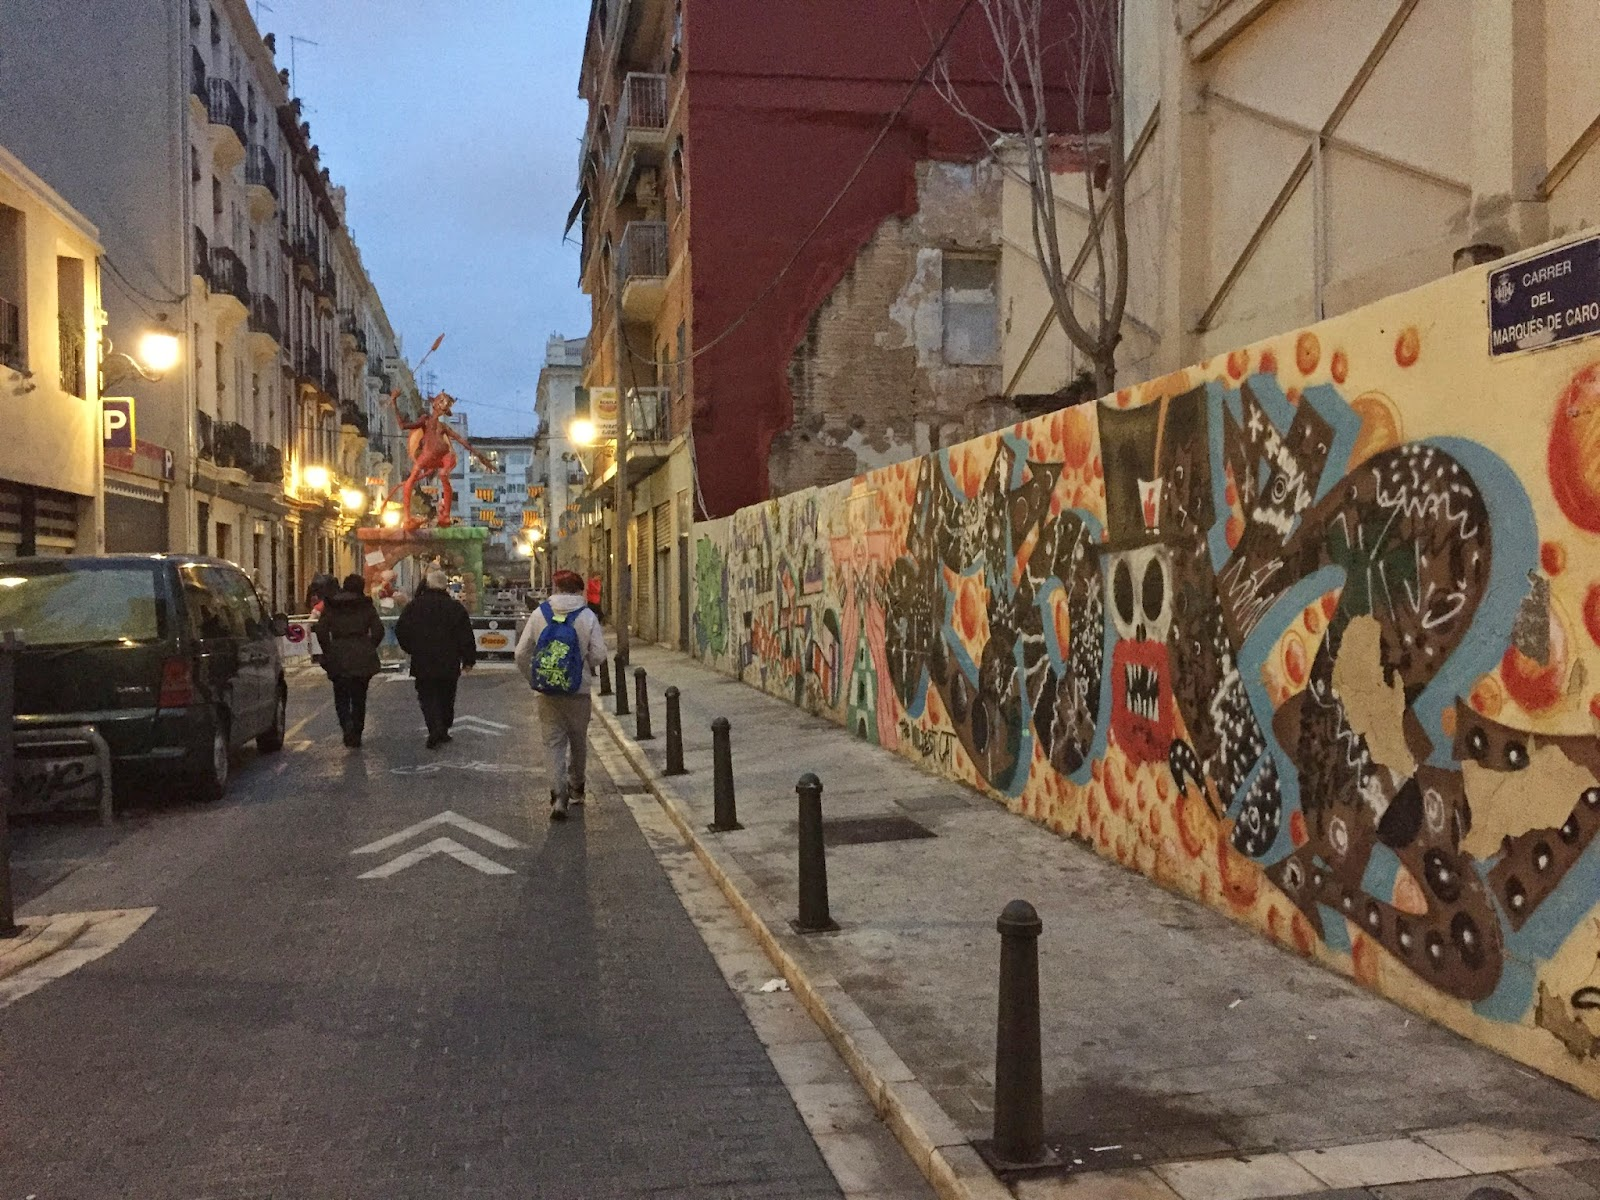 Really cool street art and a ninot in the distance